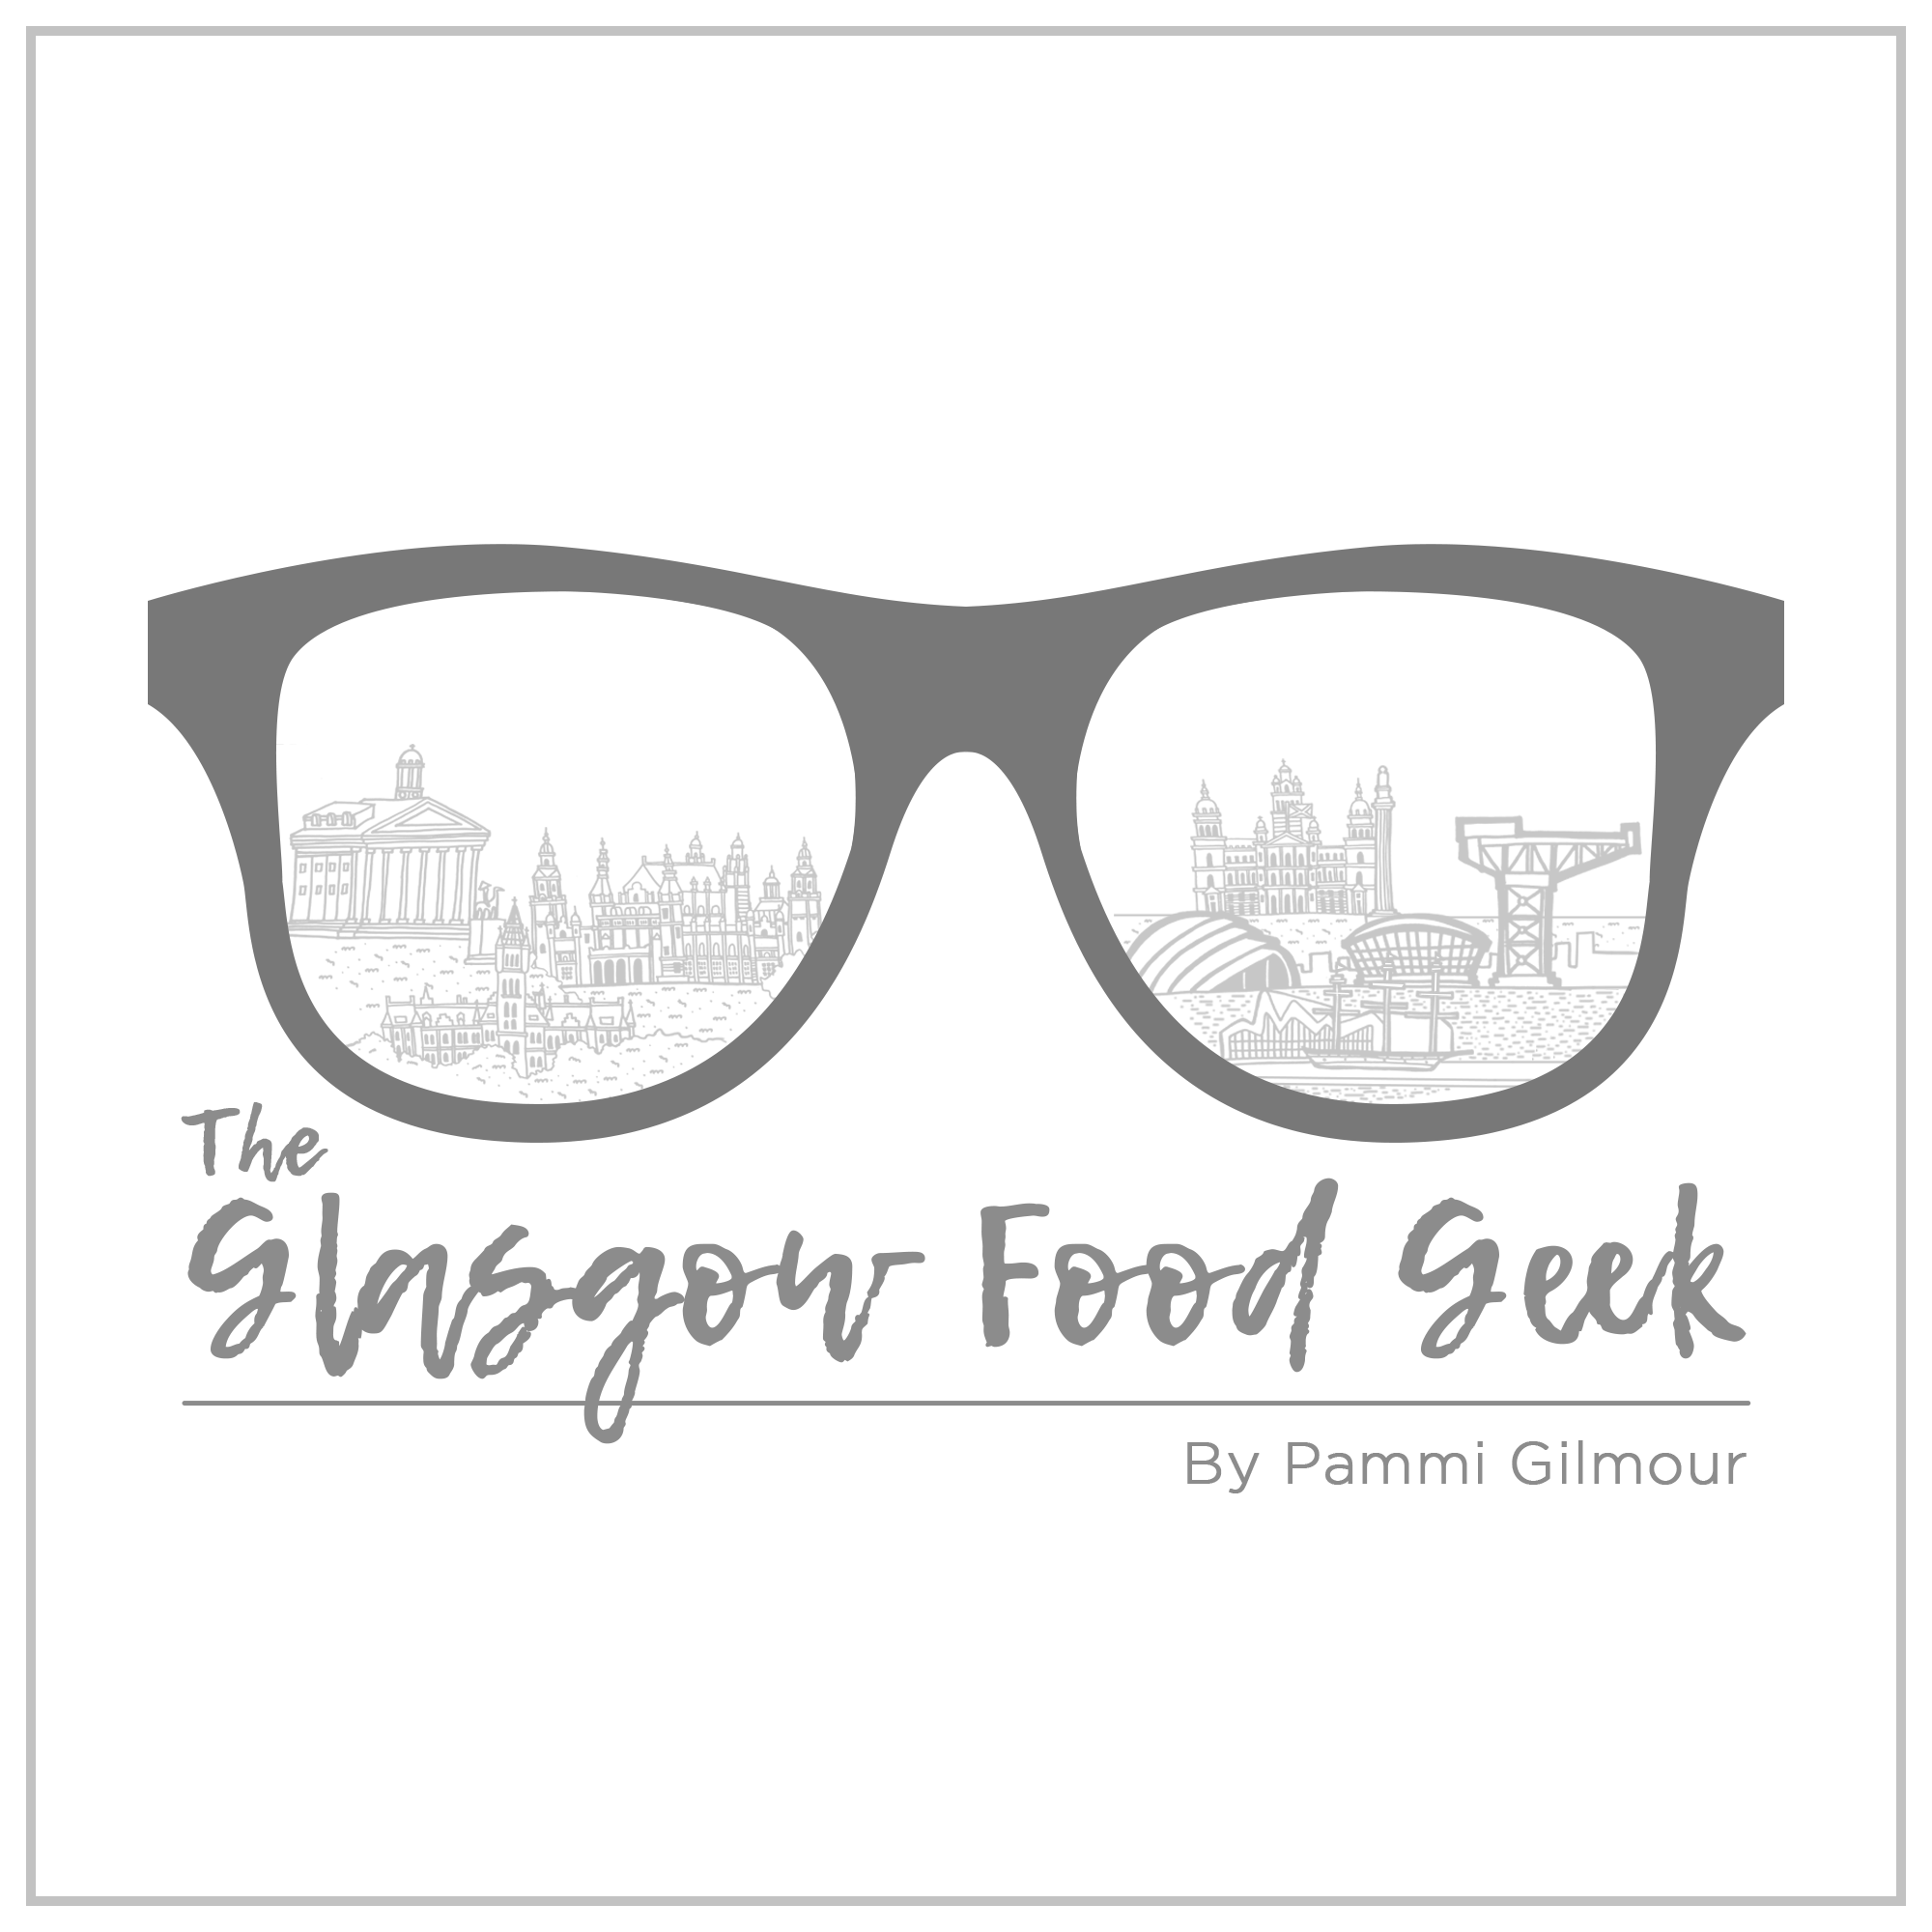 Glasgow Food Geek